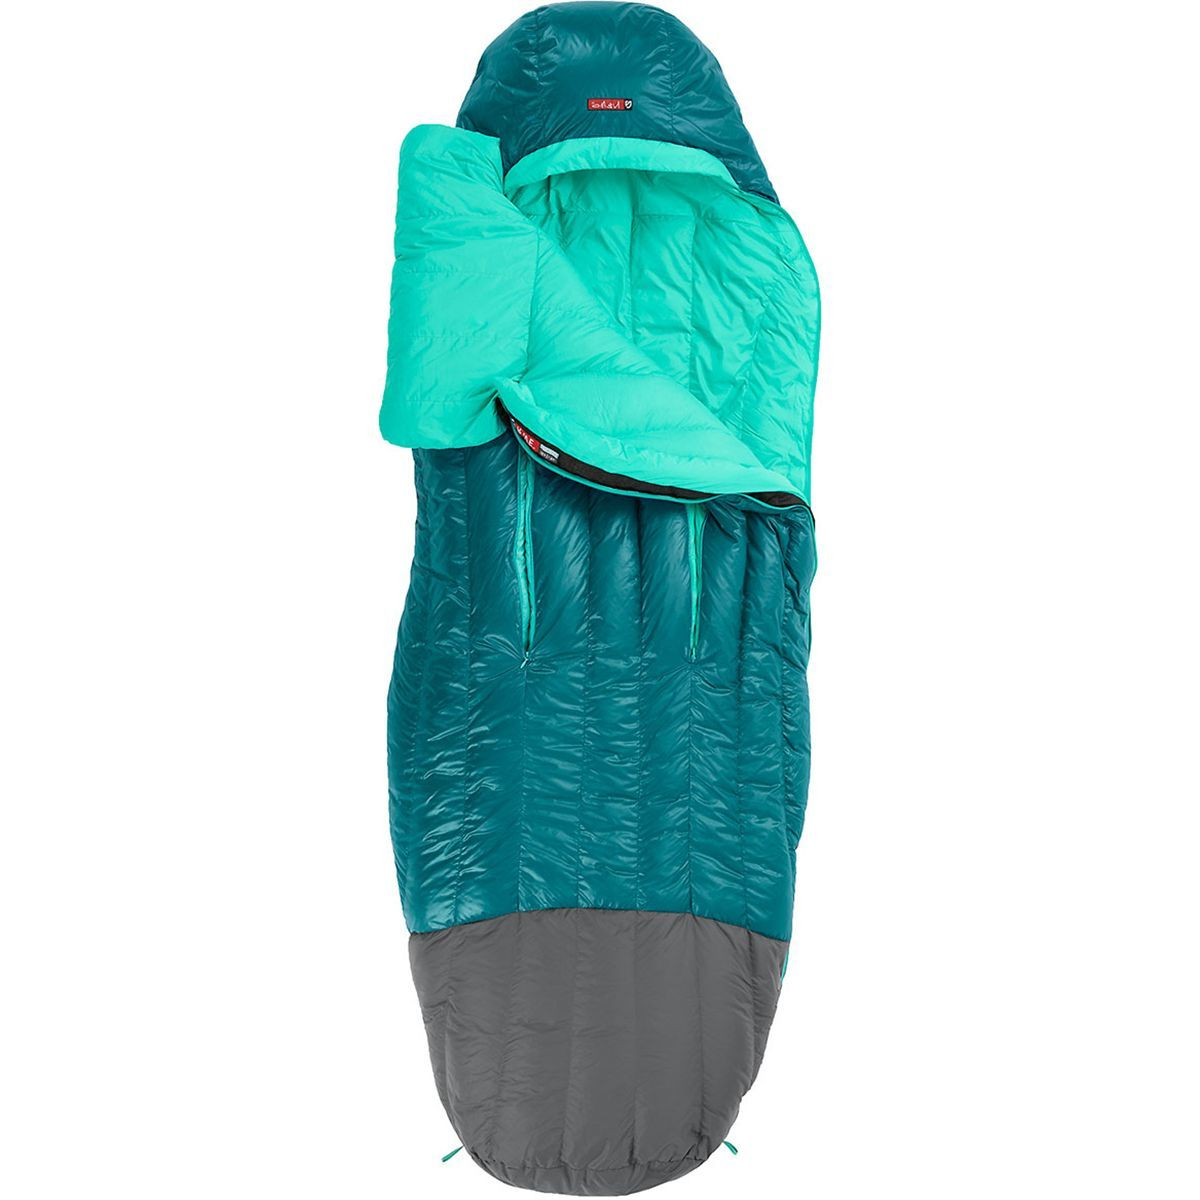 NEMO Equipment Inc. Rave 15 Sleeping Bag: 15 Degree Down - Women's